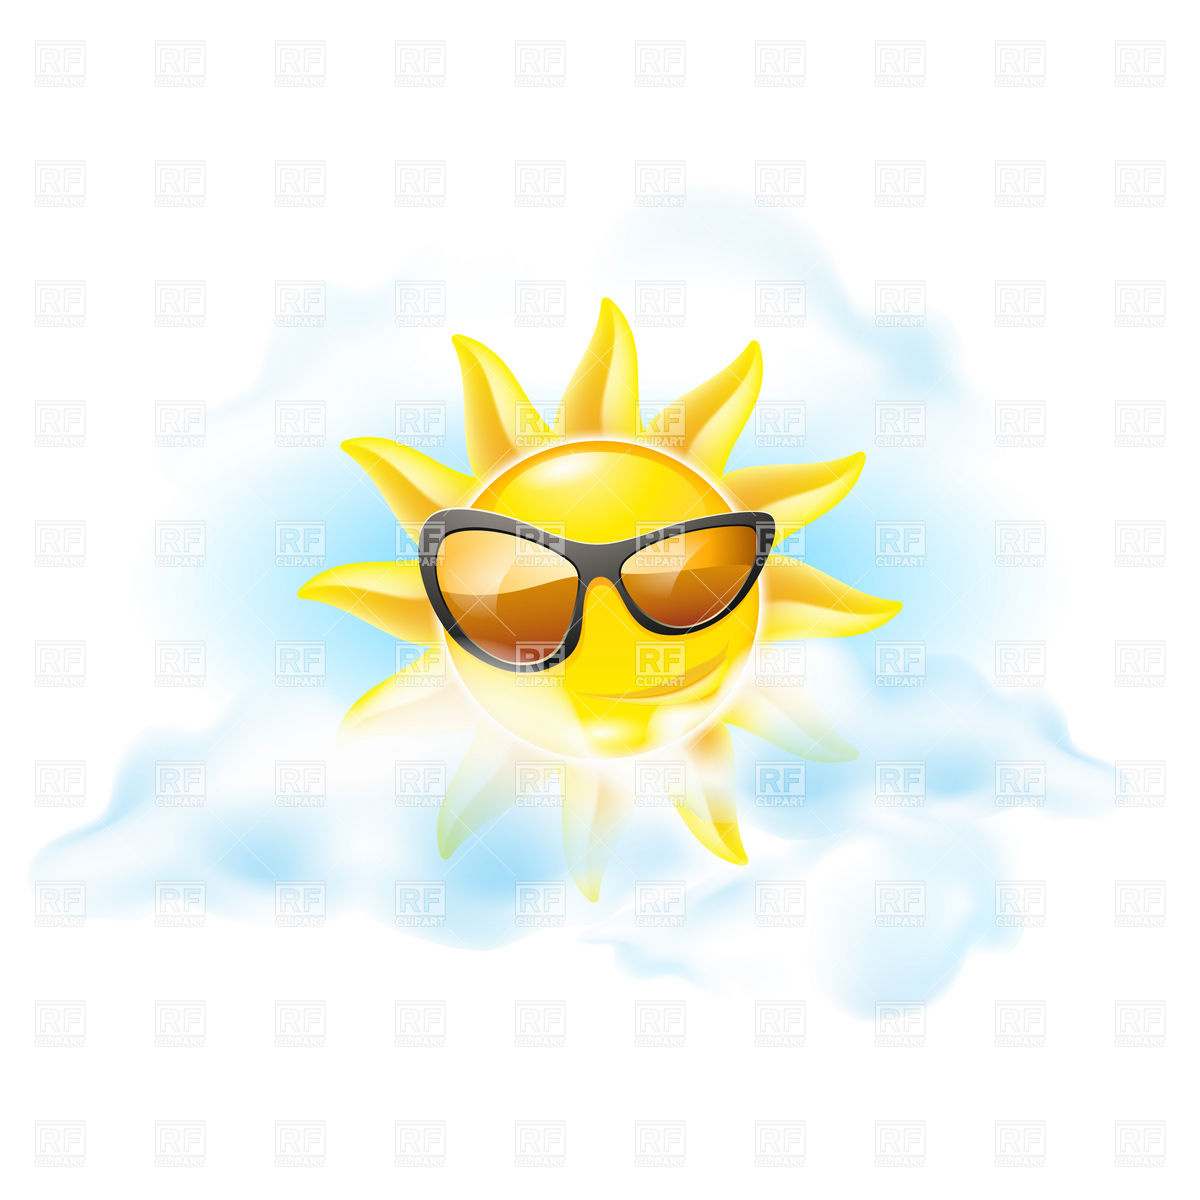 Cartoon Sun   Summer Symbol Download Royalty Free Vector Clipart  Eps